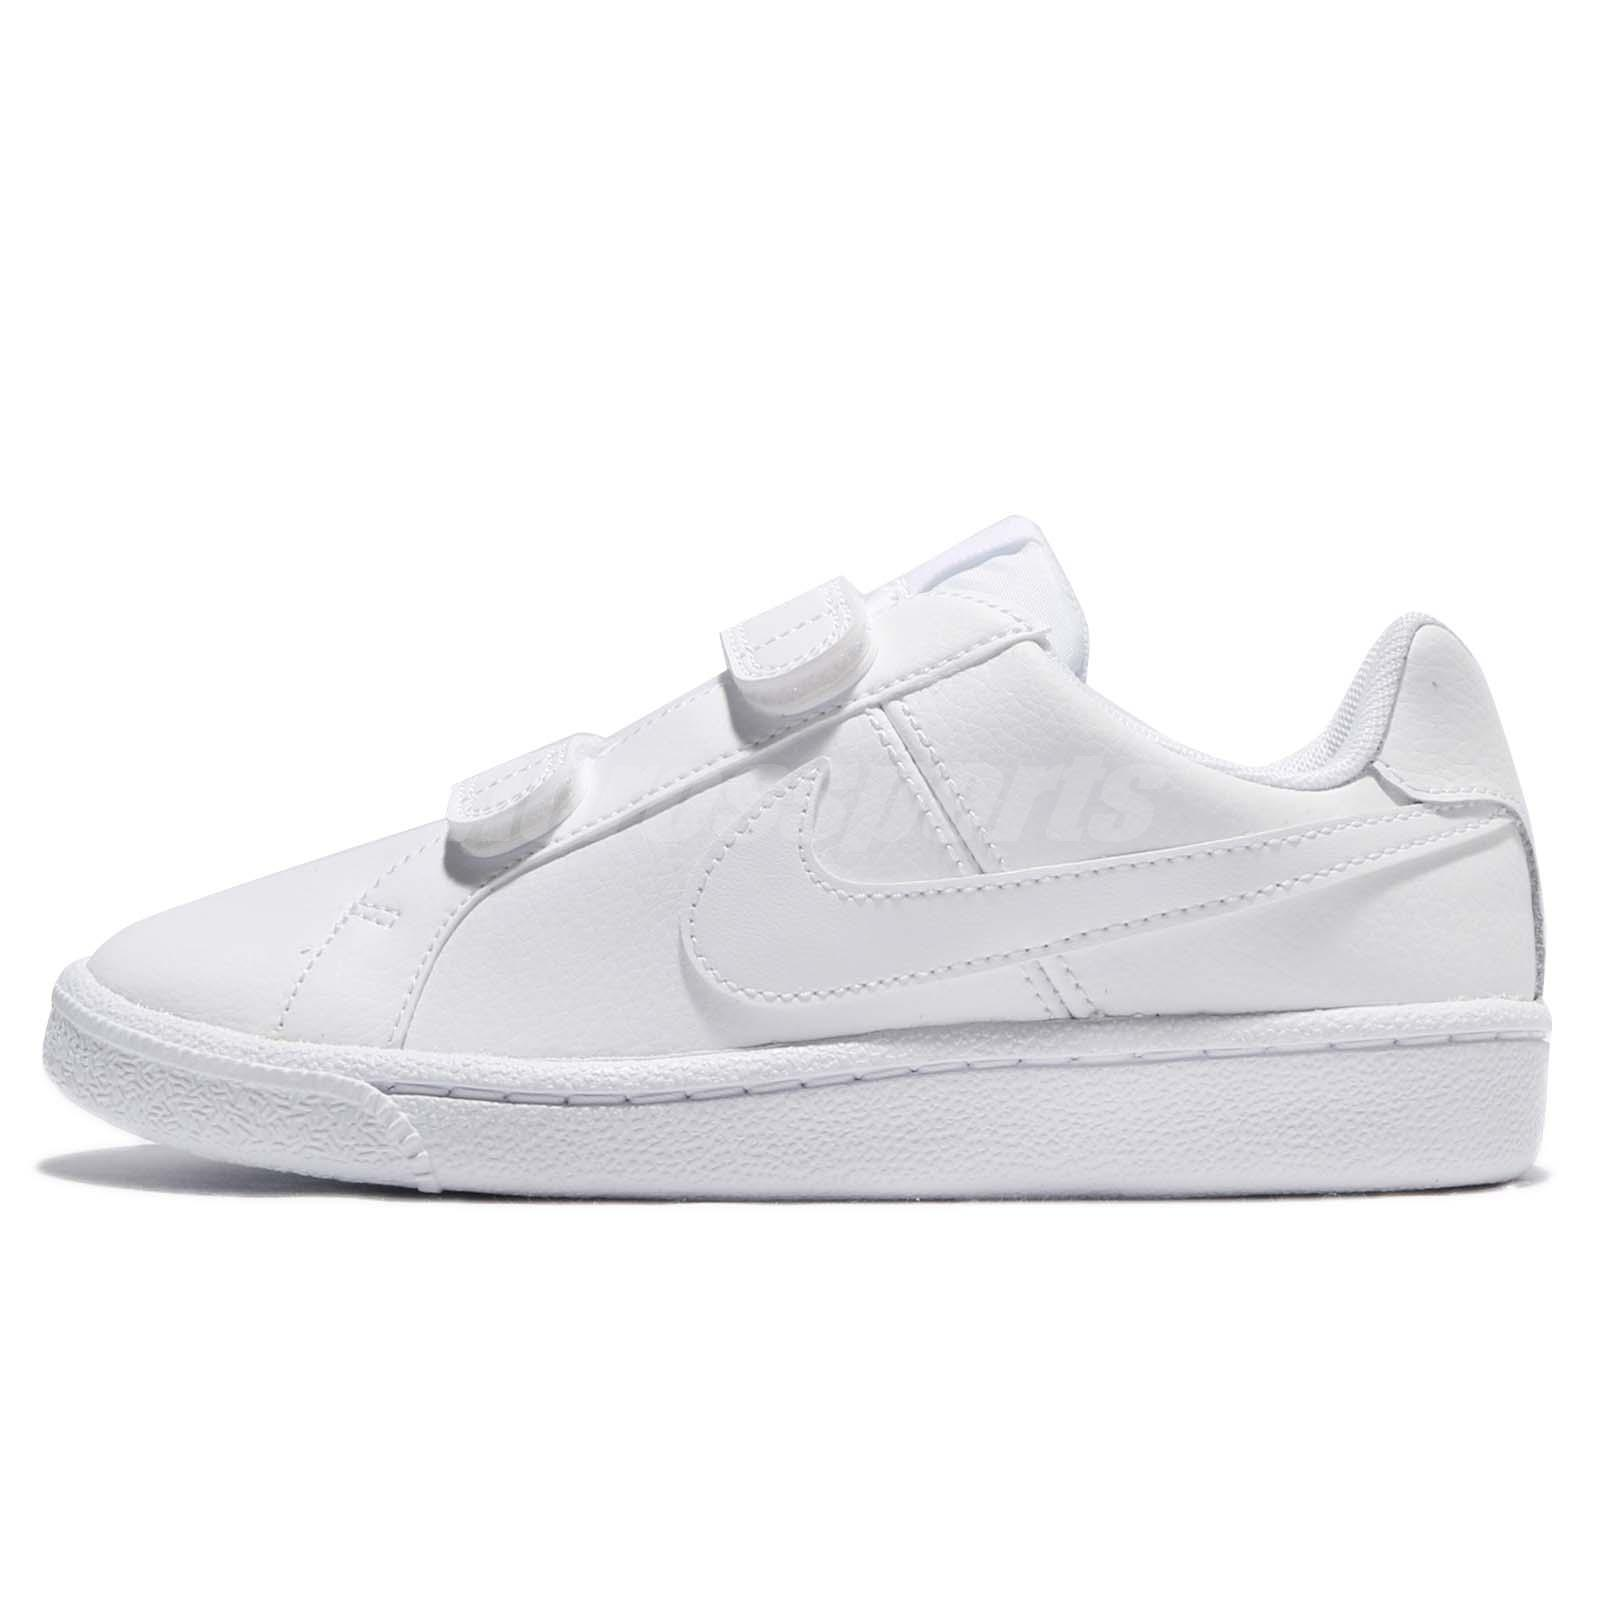 Nike Court Royale PSV Triple White Leather Kids Preschool Boys Shoes  833536-102 6d37ae291cee2